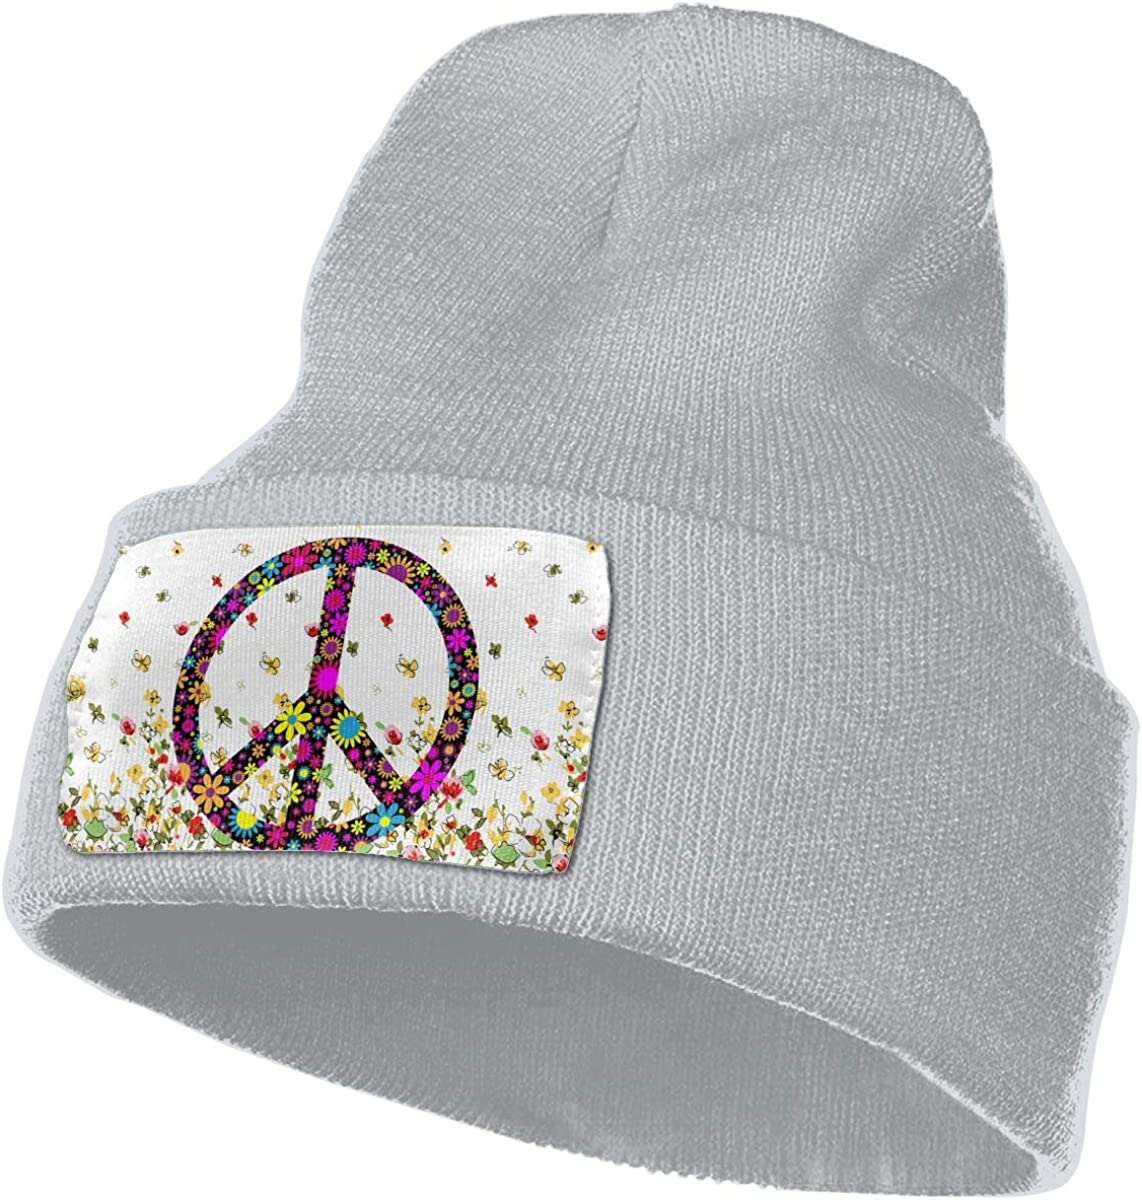 Love Peace Symbol Hat for Men and Women Winter Warm Hats Knit Slouchy Thick Skull Cap